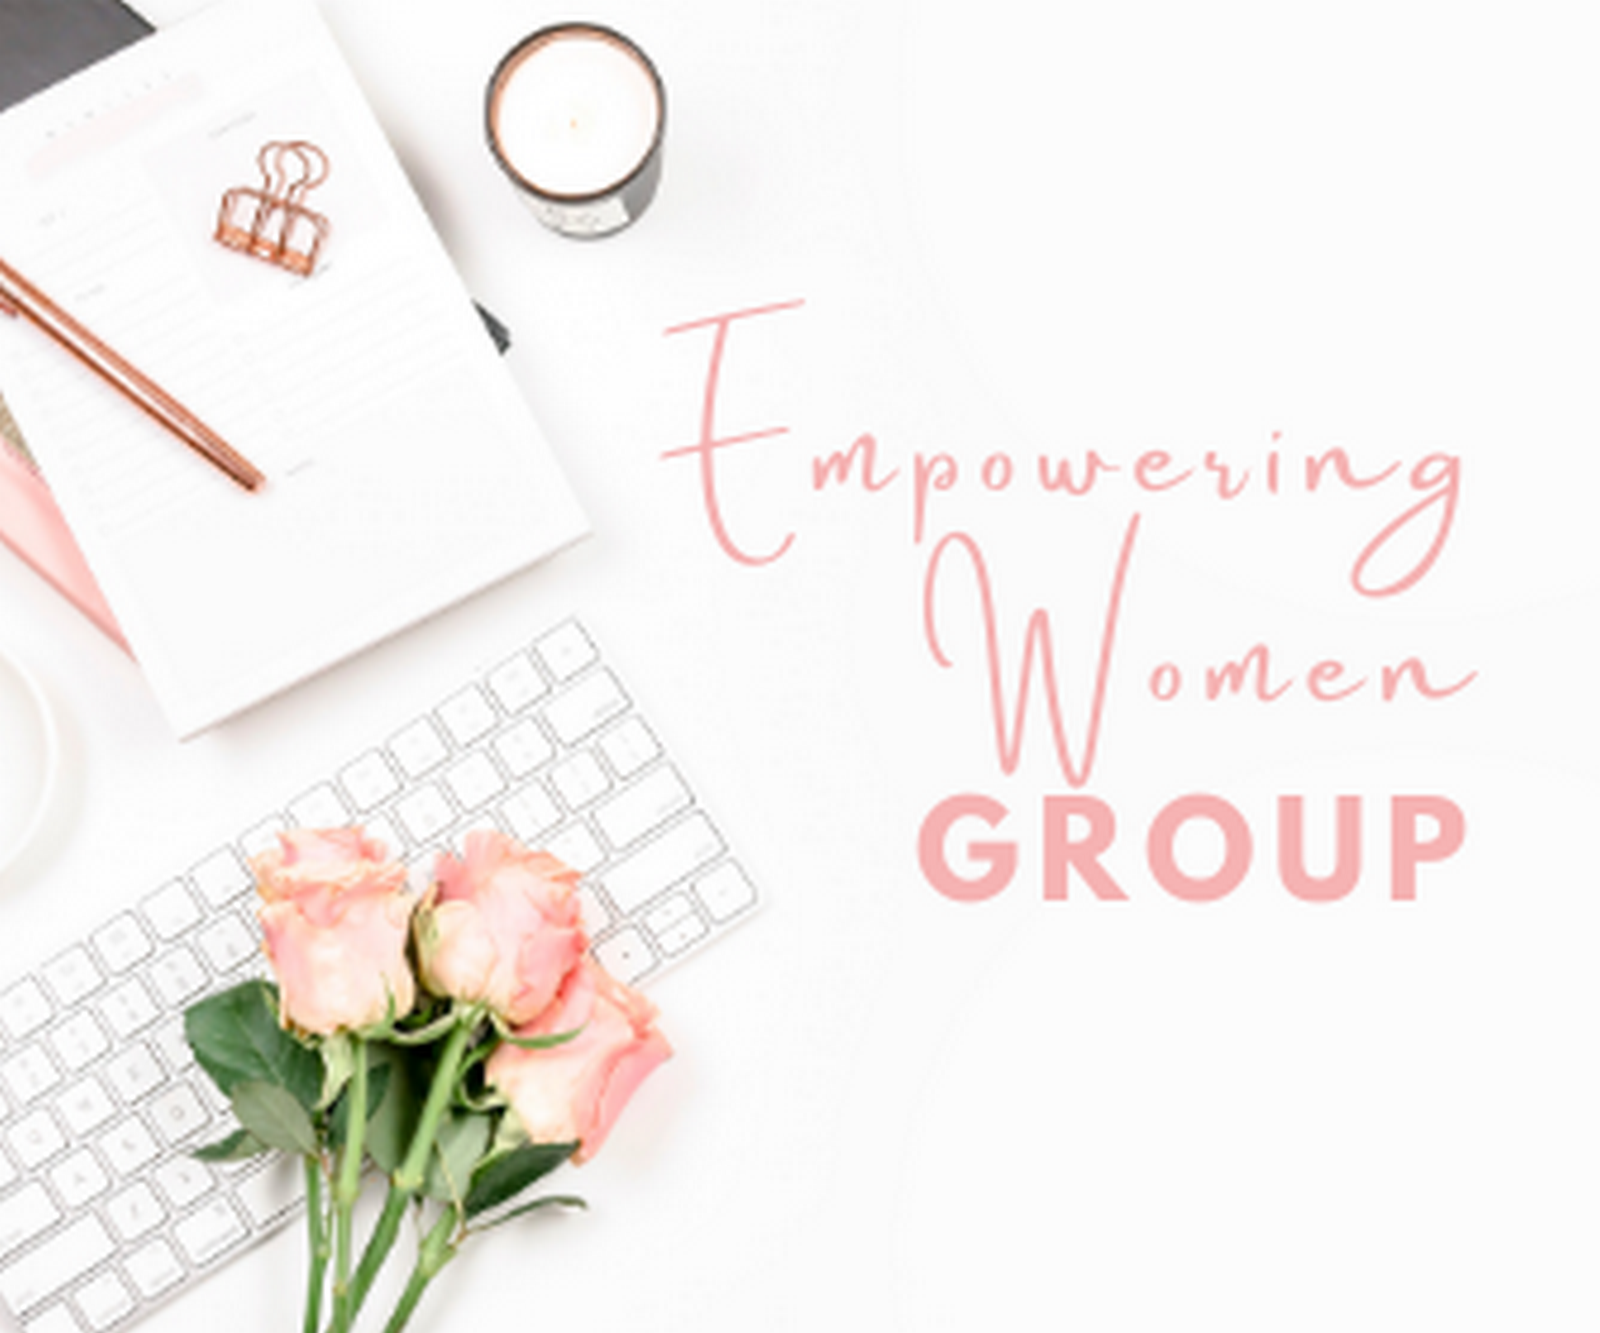 cherylphan.com - Empowering Women EW Group